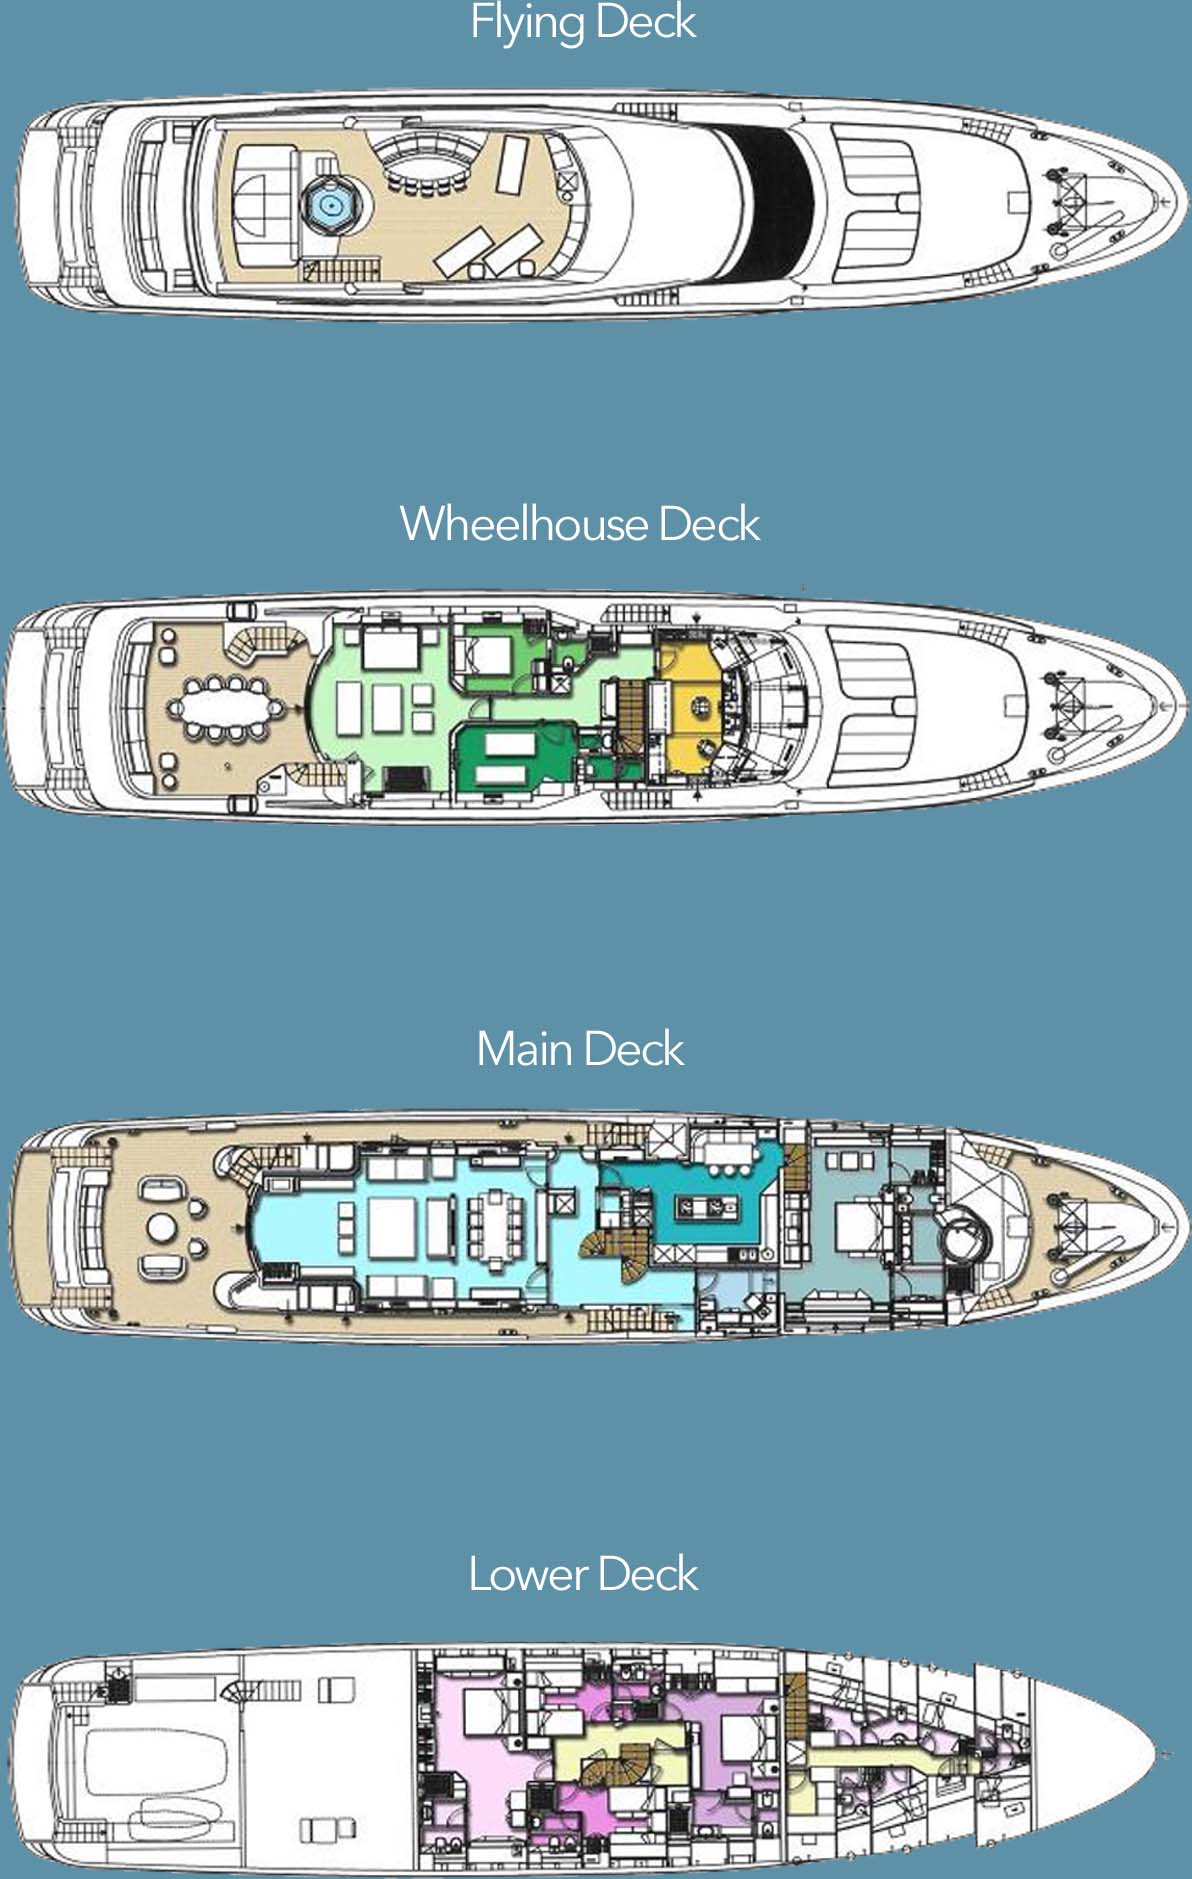 Mischief Super Yacht - Specification and Deck Layout